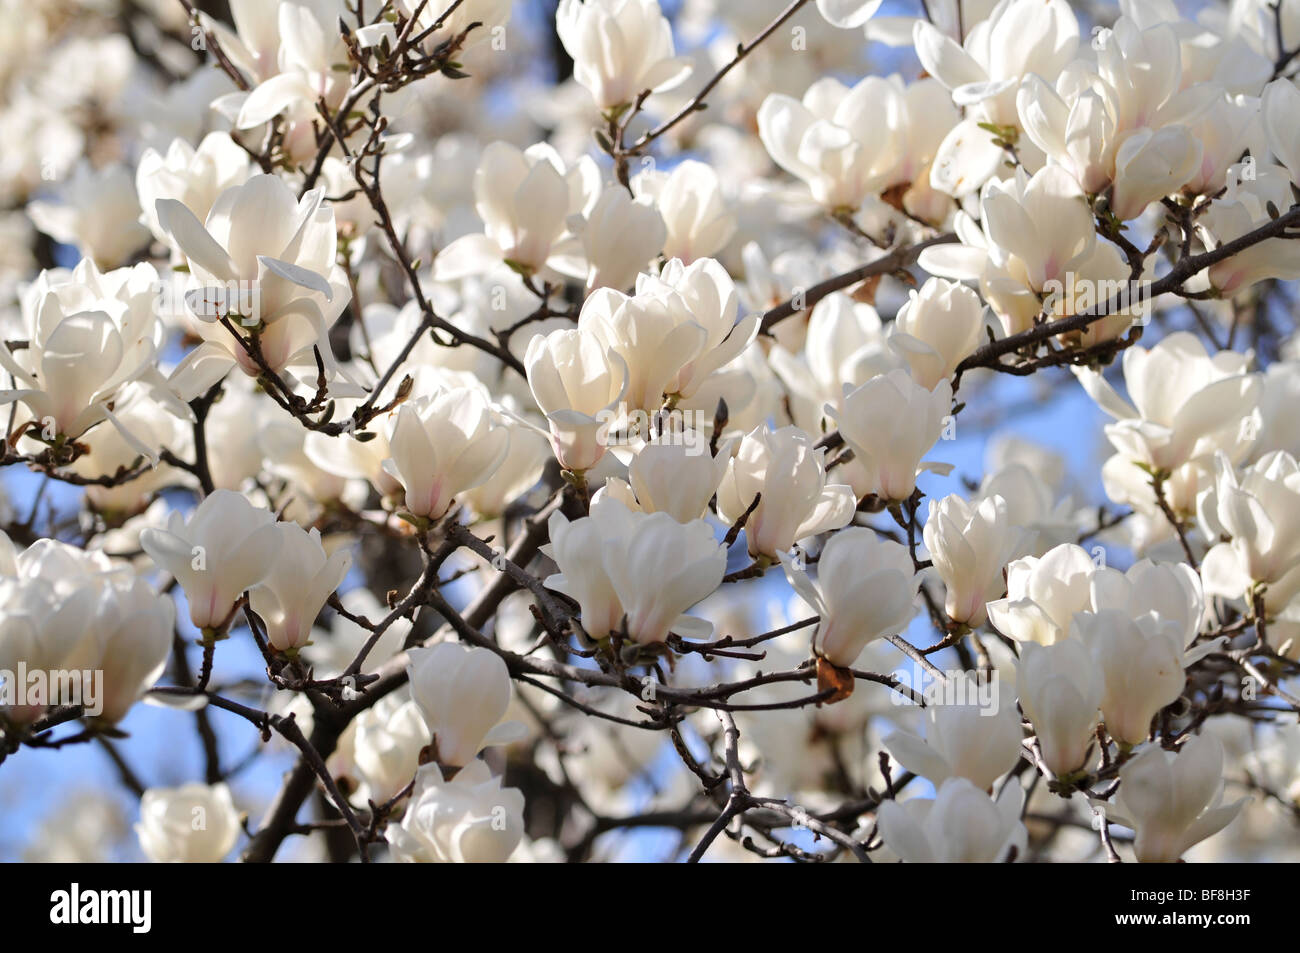 White magnolia flowers in full bloom stock photo 26619251 alamy white magnolia flowers in full bloom mightylinksfo